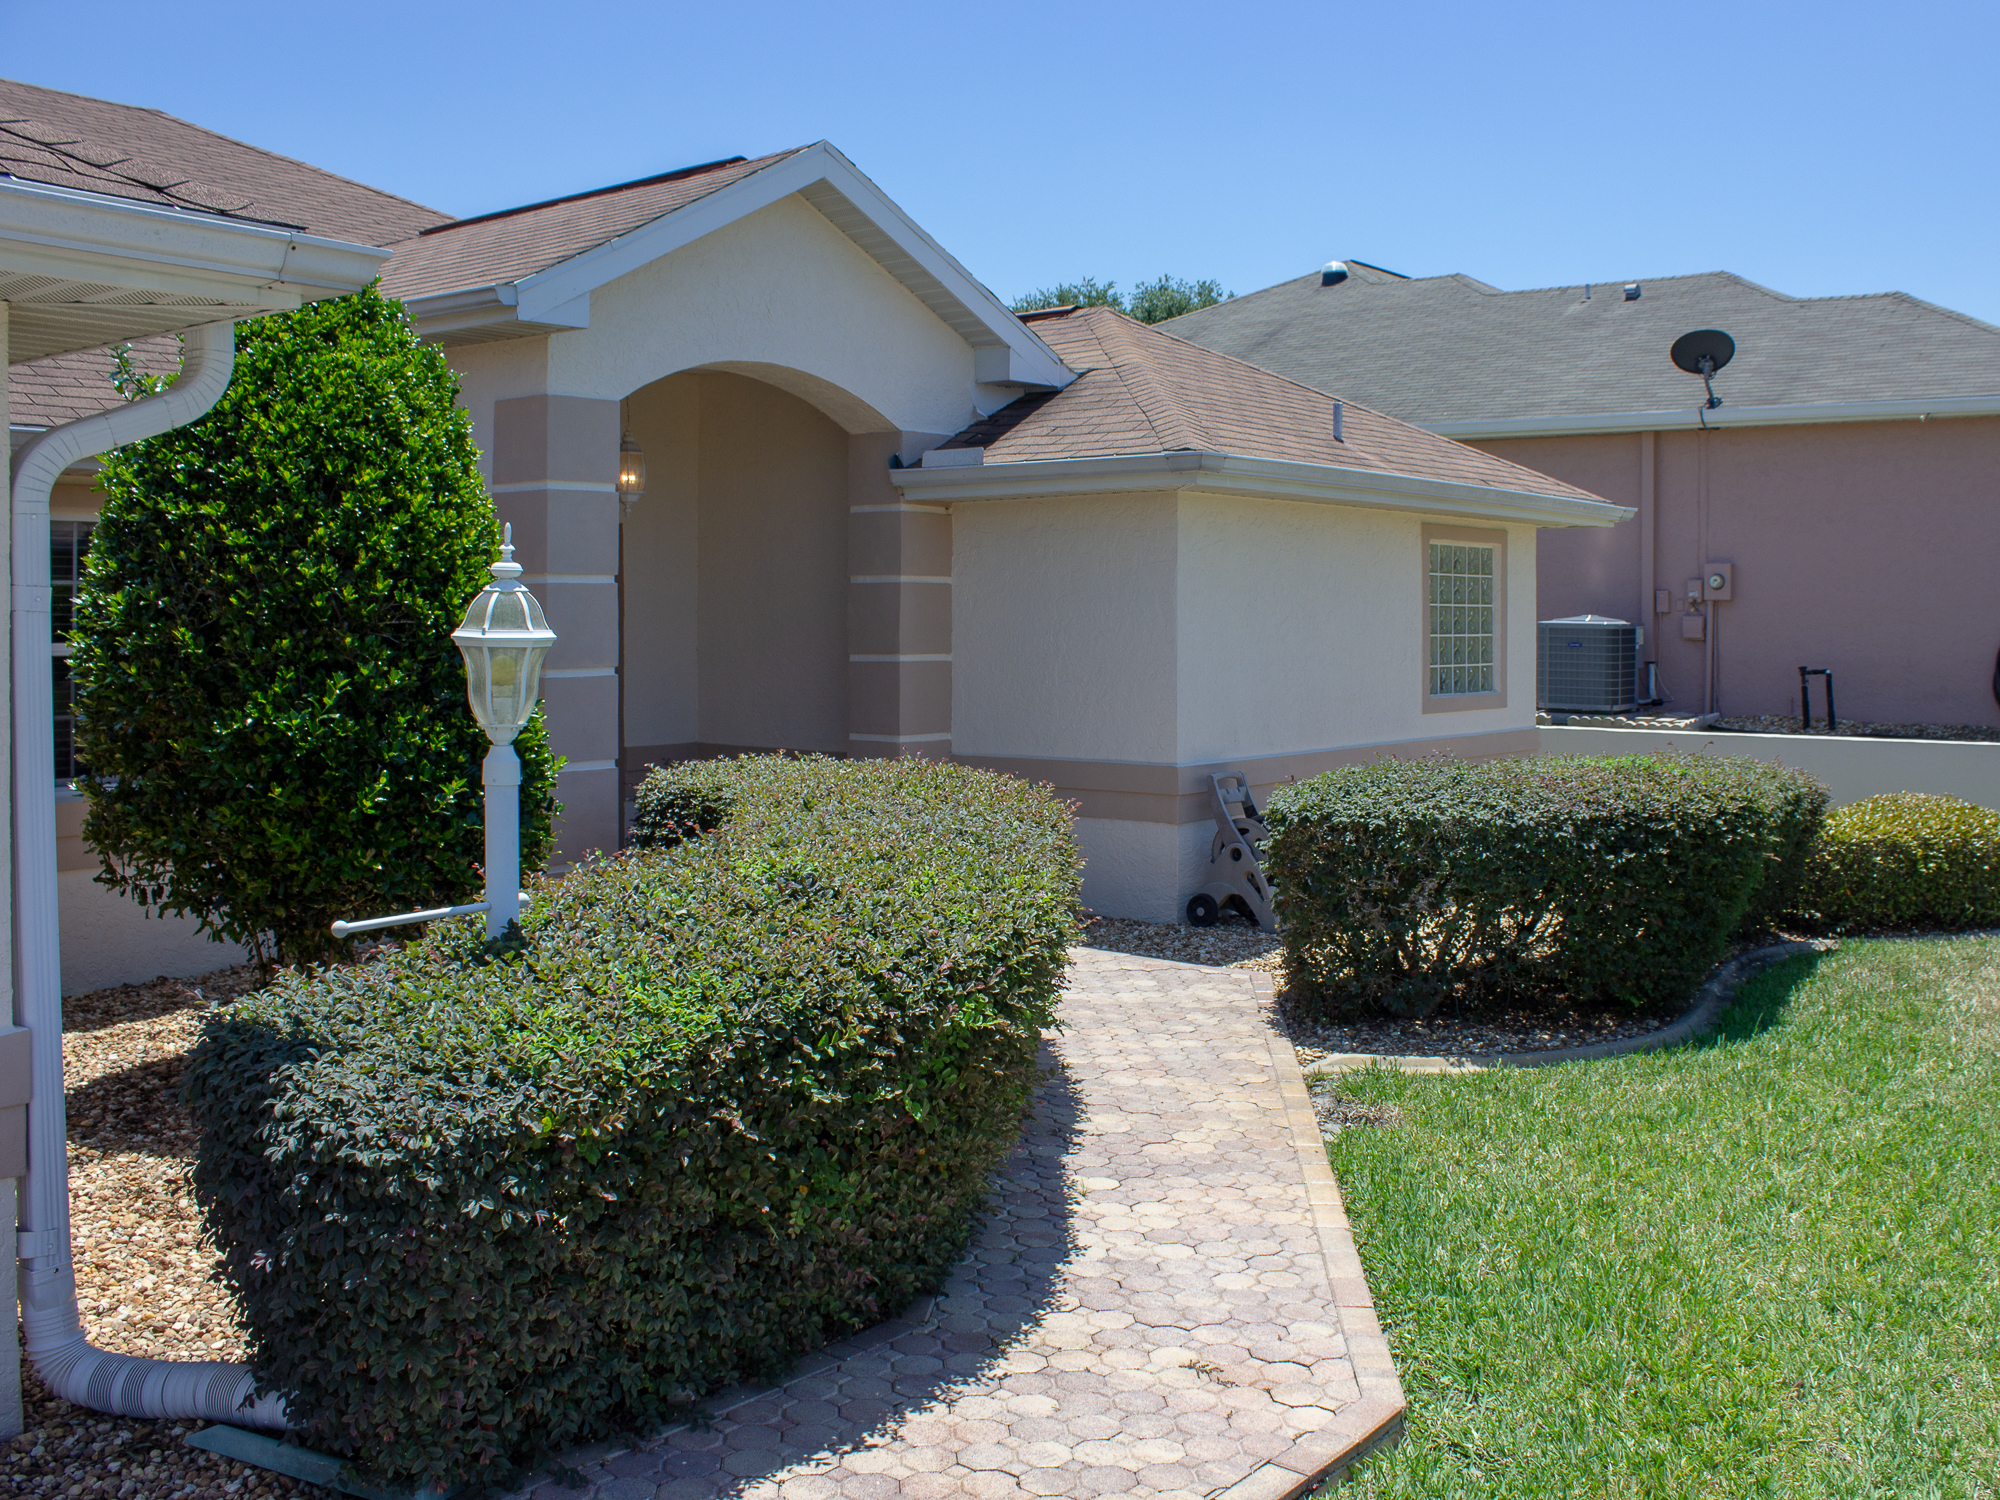 17431-SE-110th-Terrace-Summerfield-FL-34491-107-of-39